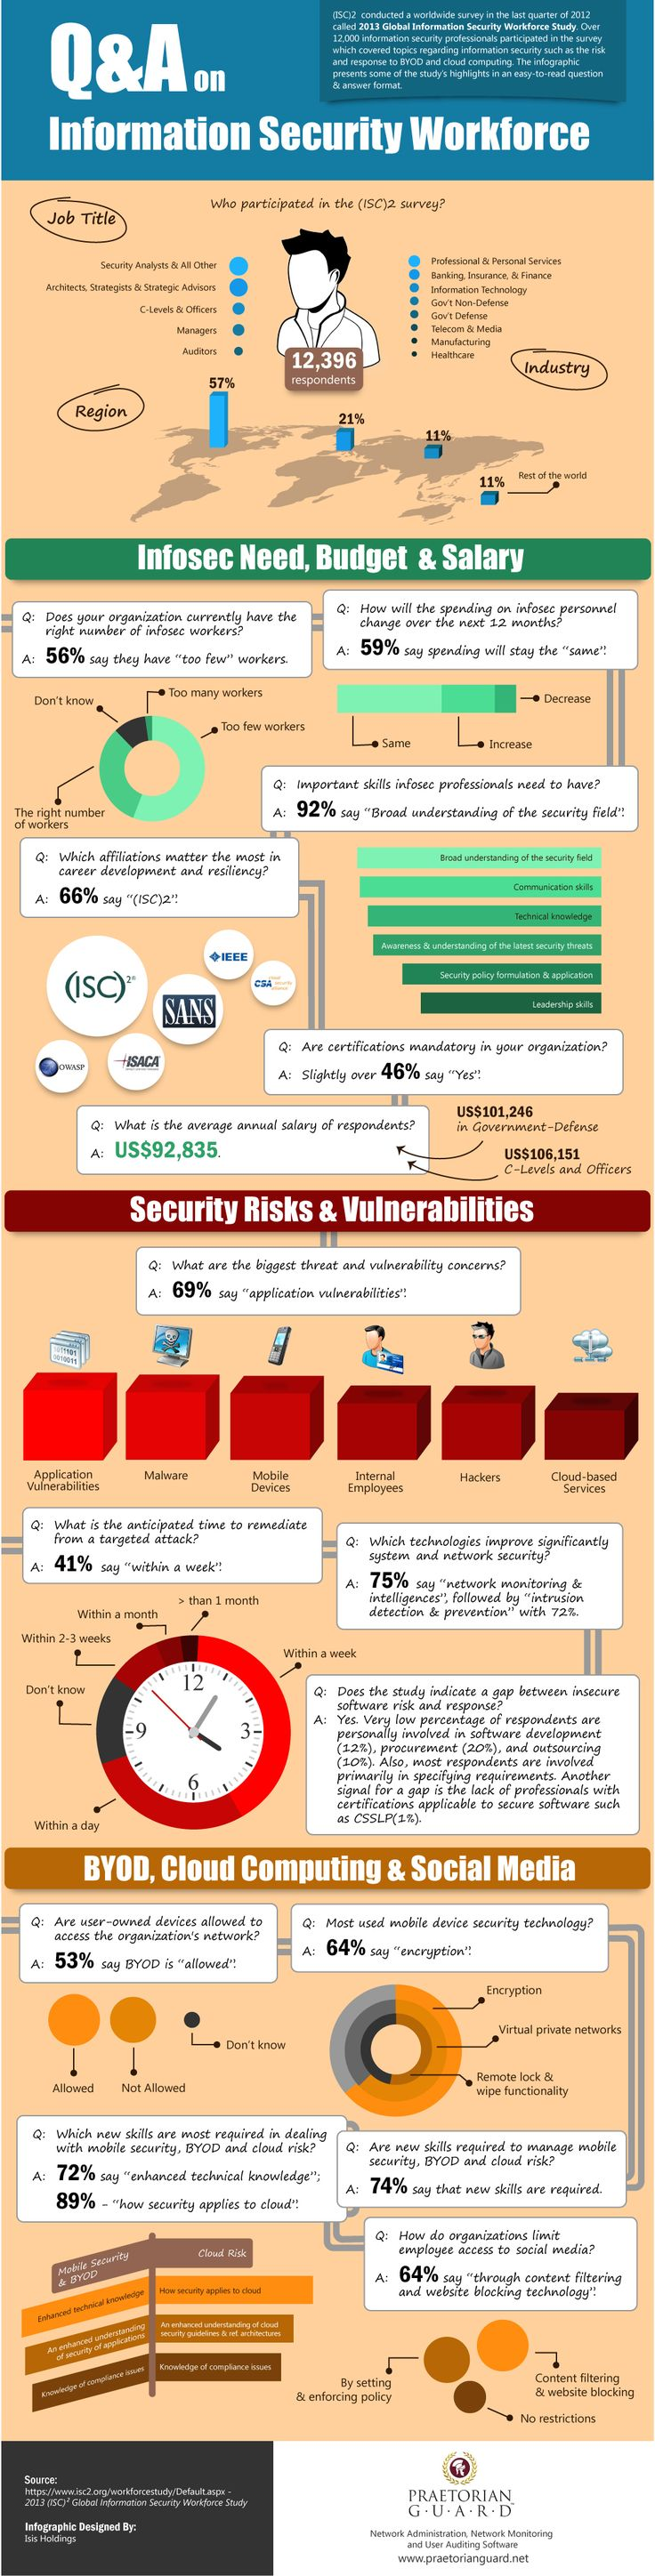 Concerns With Cloud Security